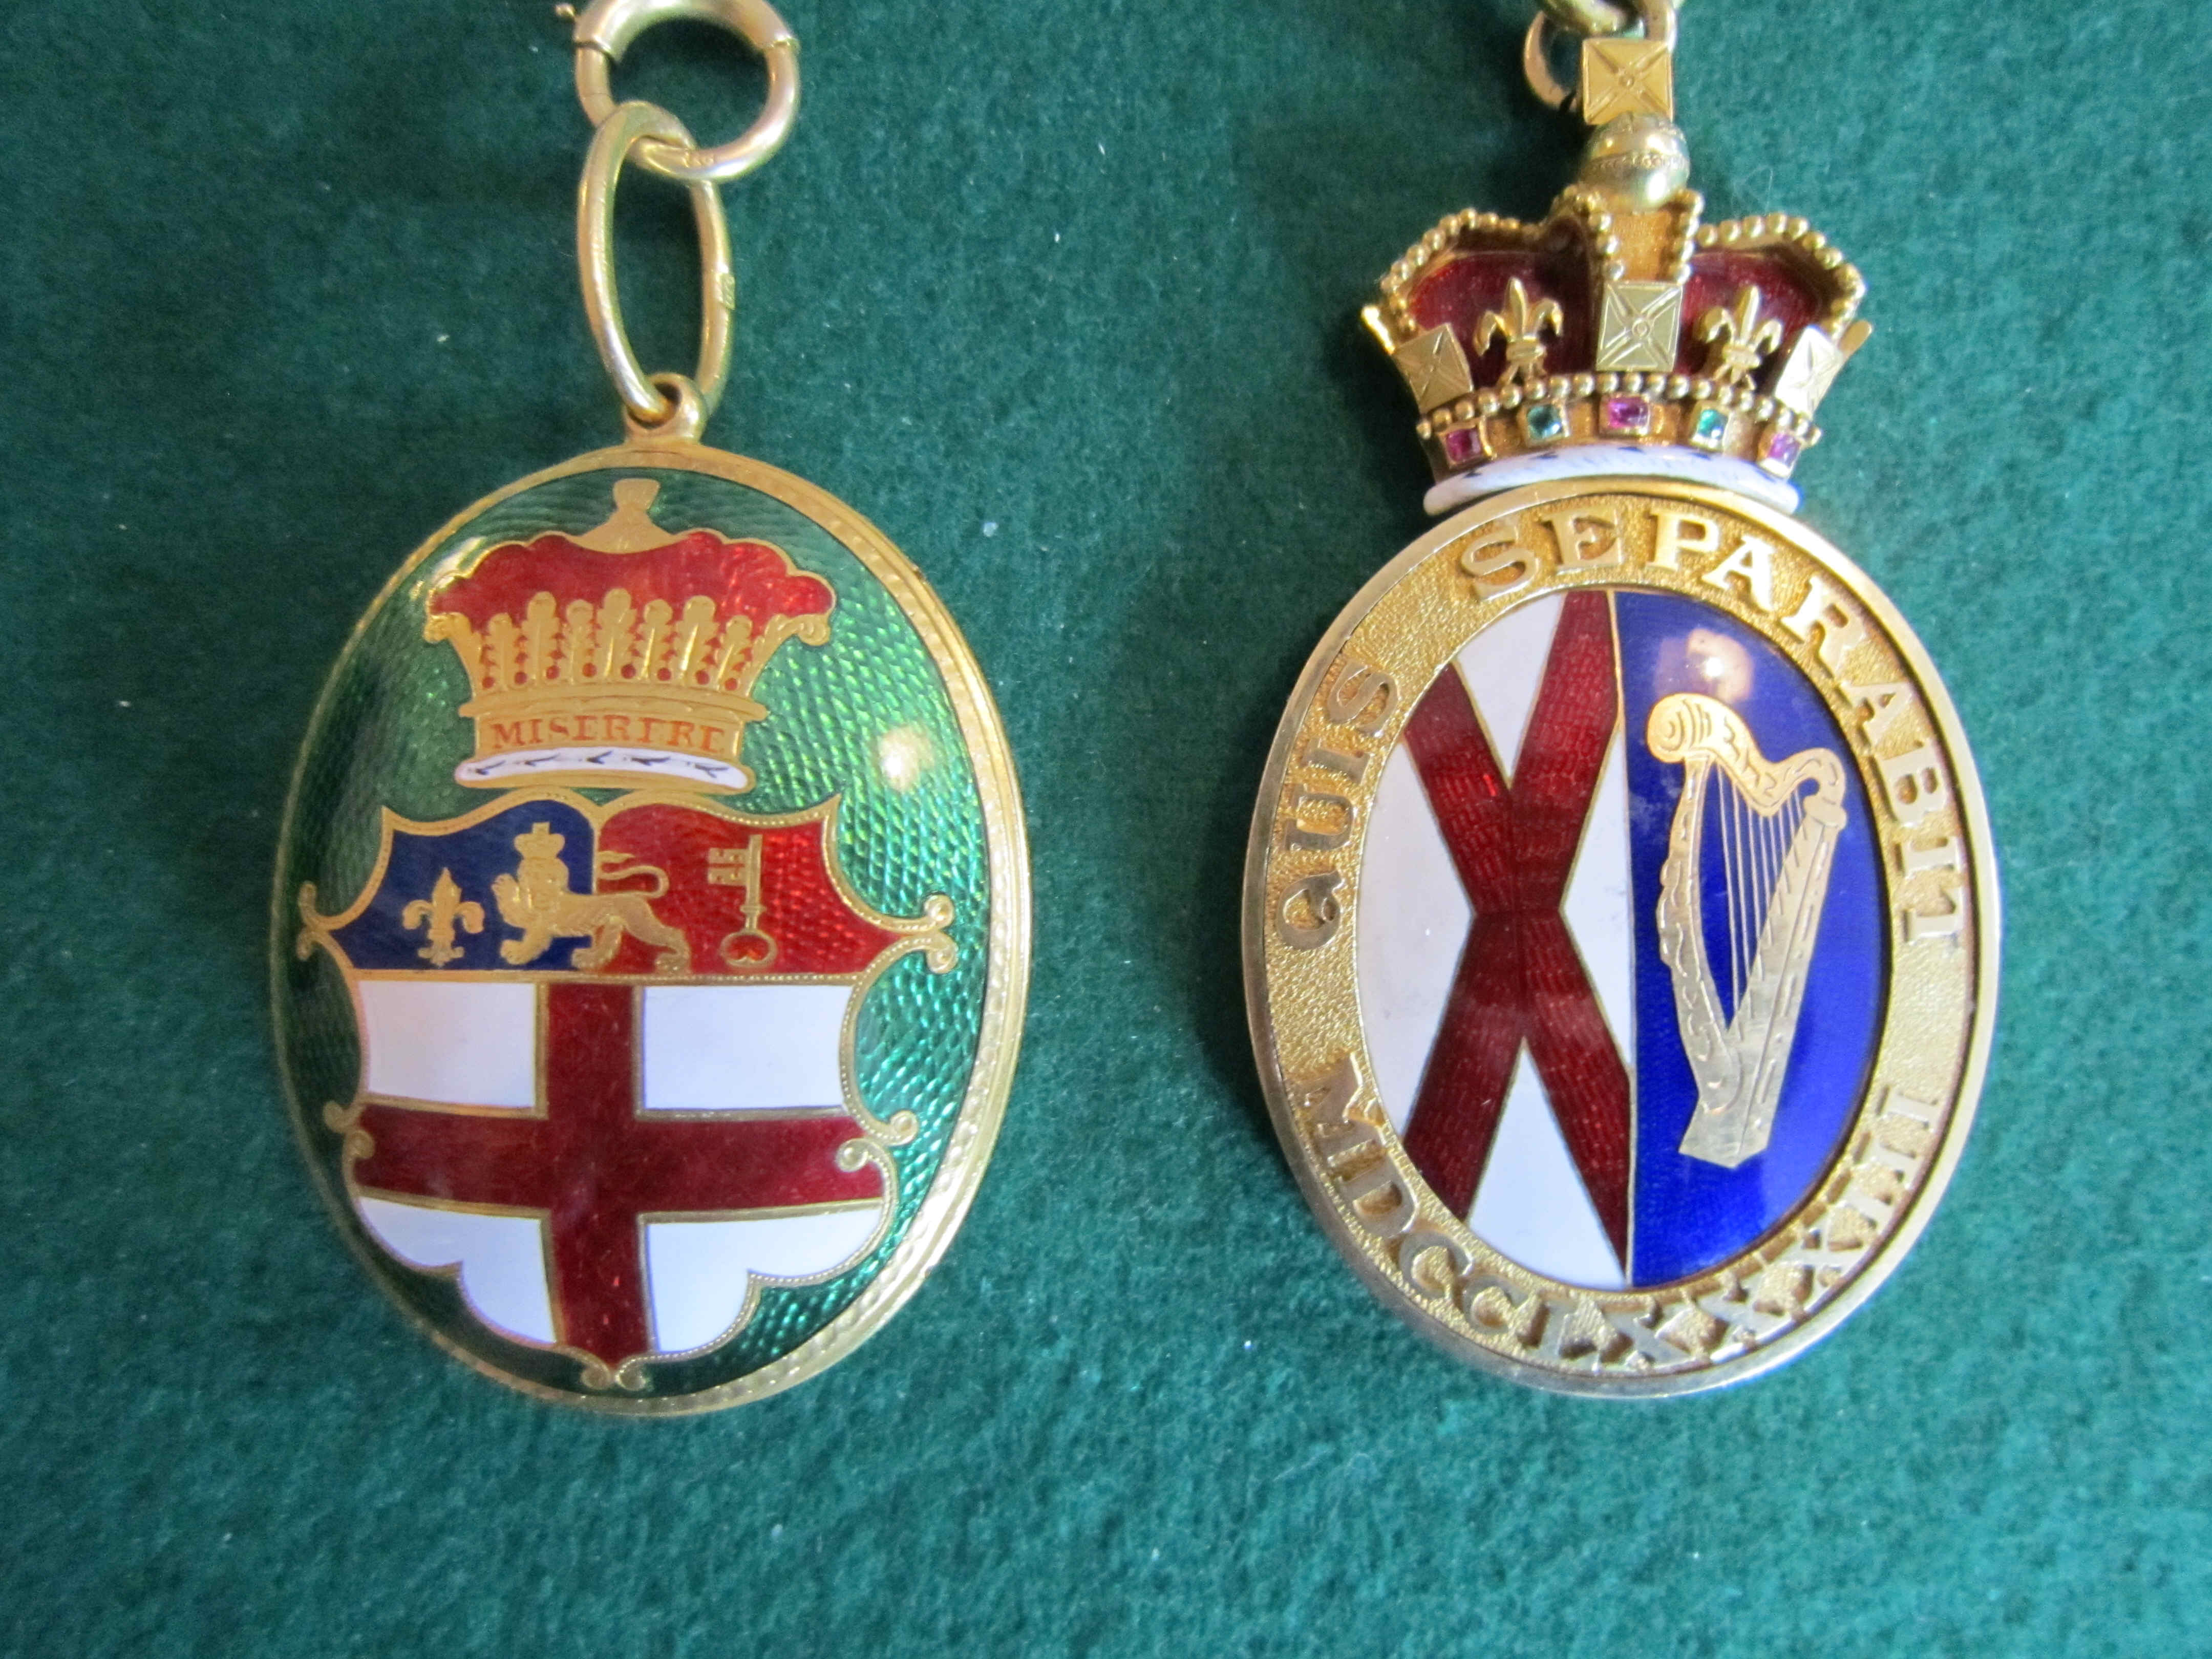 Norroy and Ulster badges